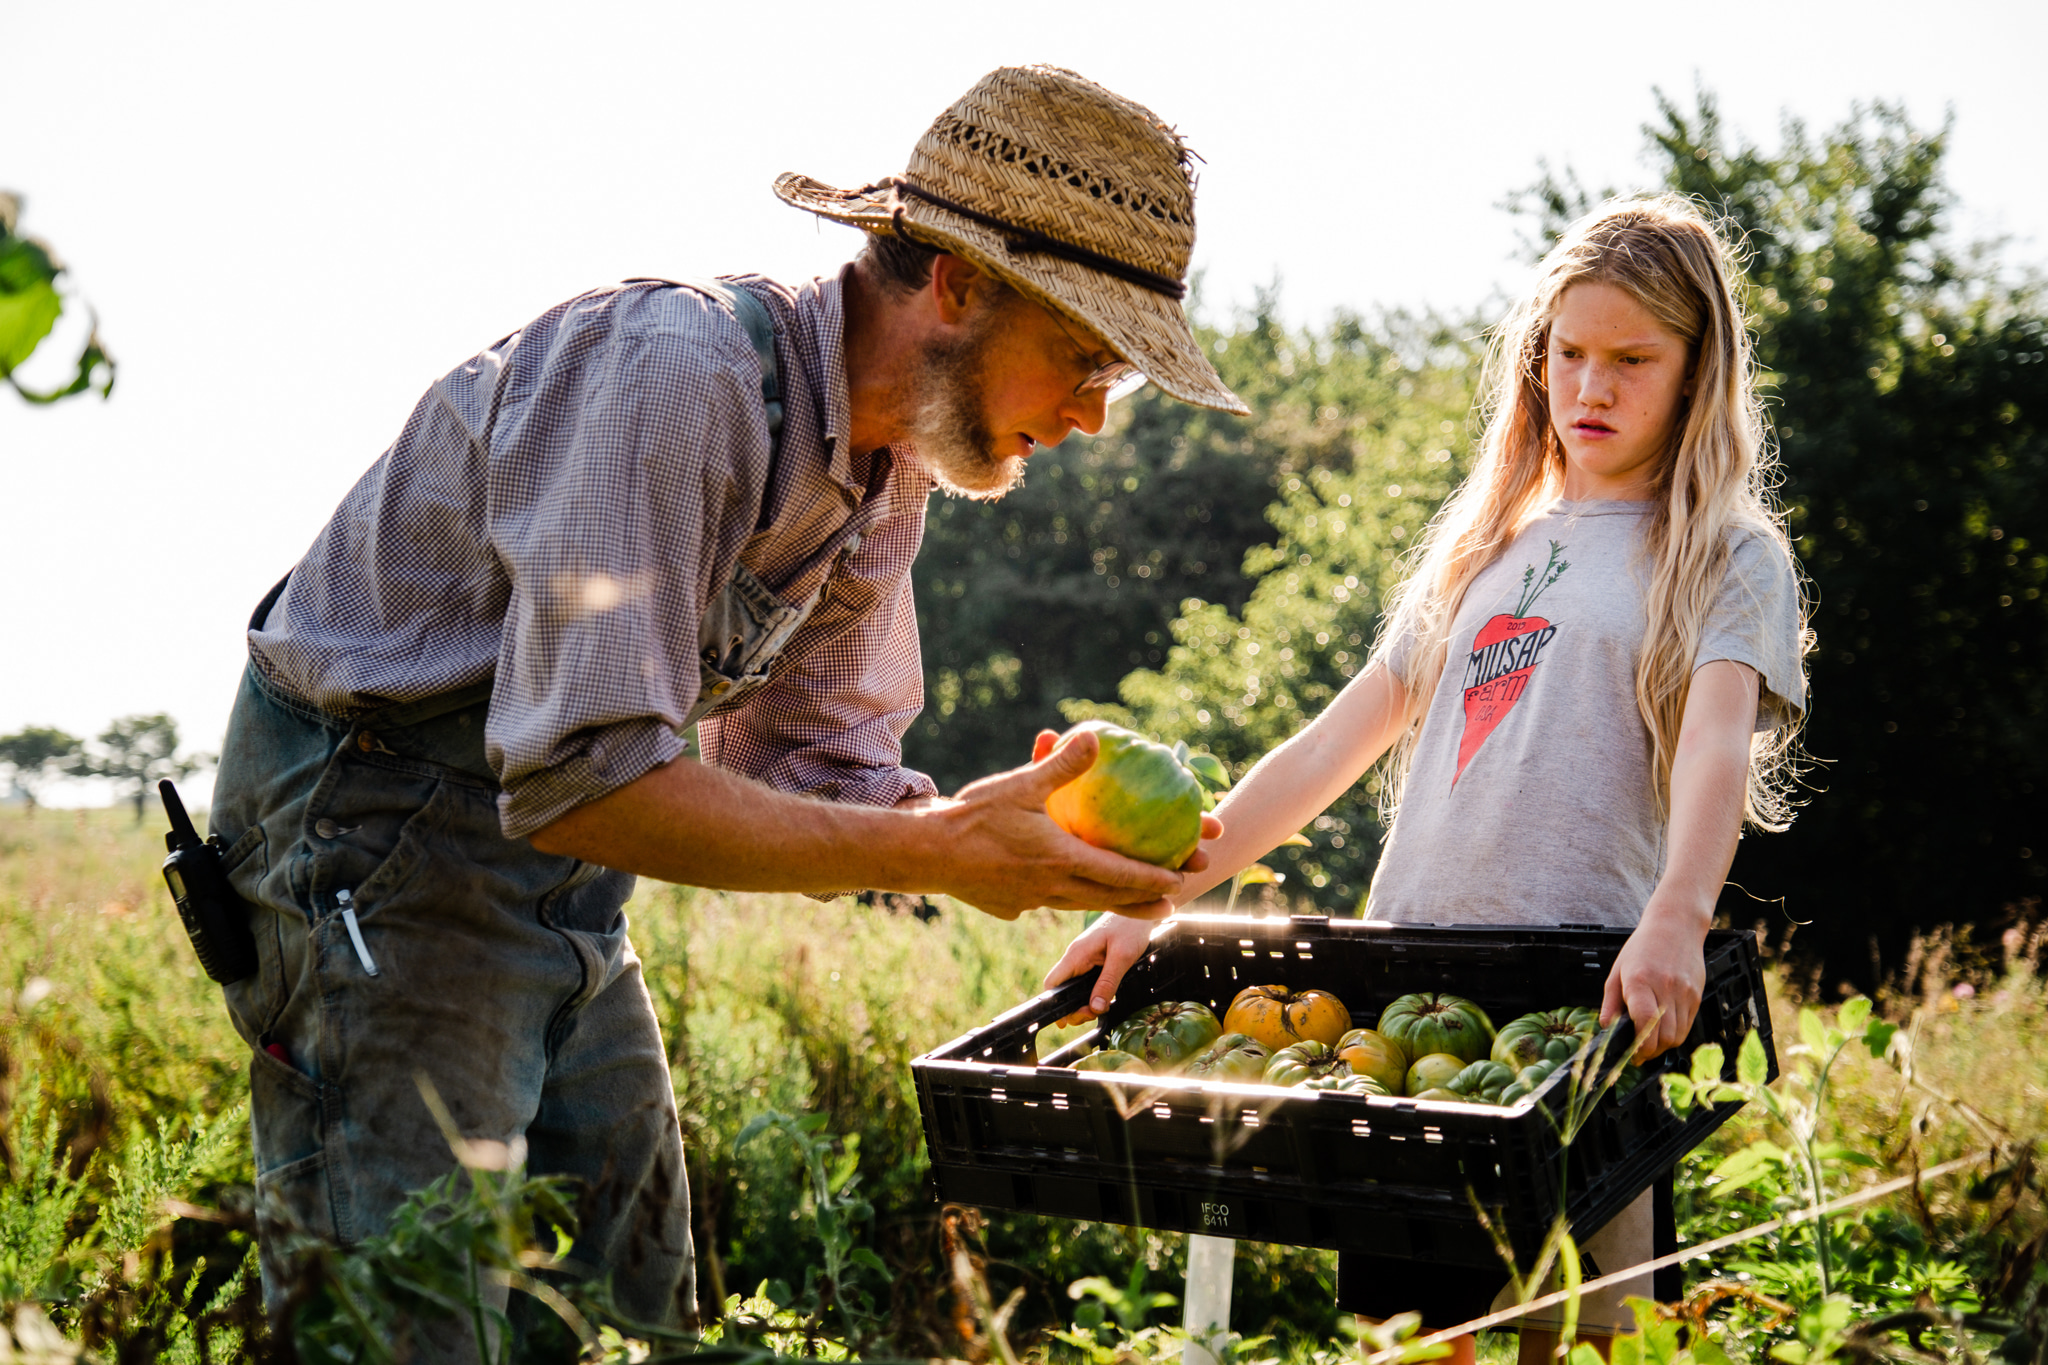 Planting For The Future, Harvesting For The Present, Farm Happenings for August 11, 2020